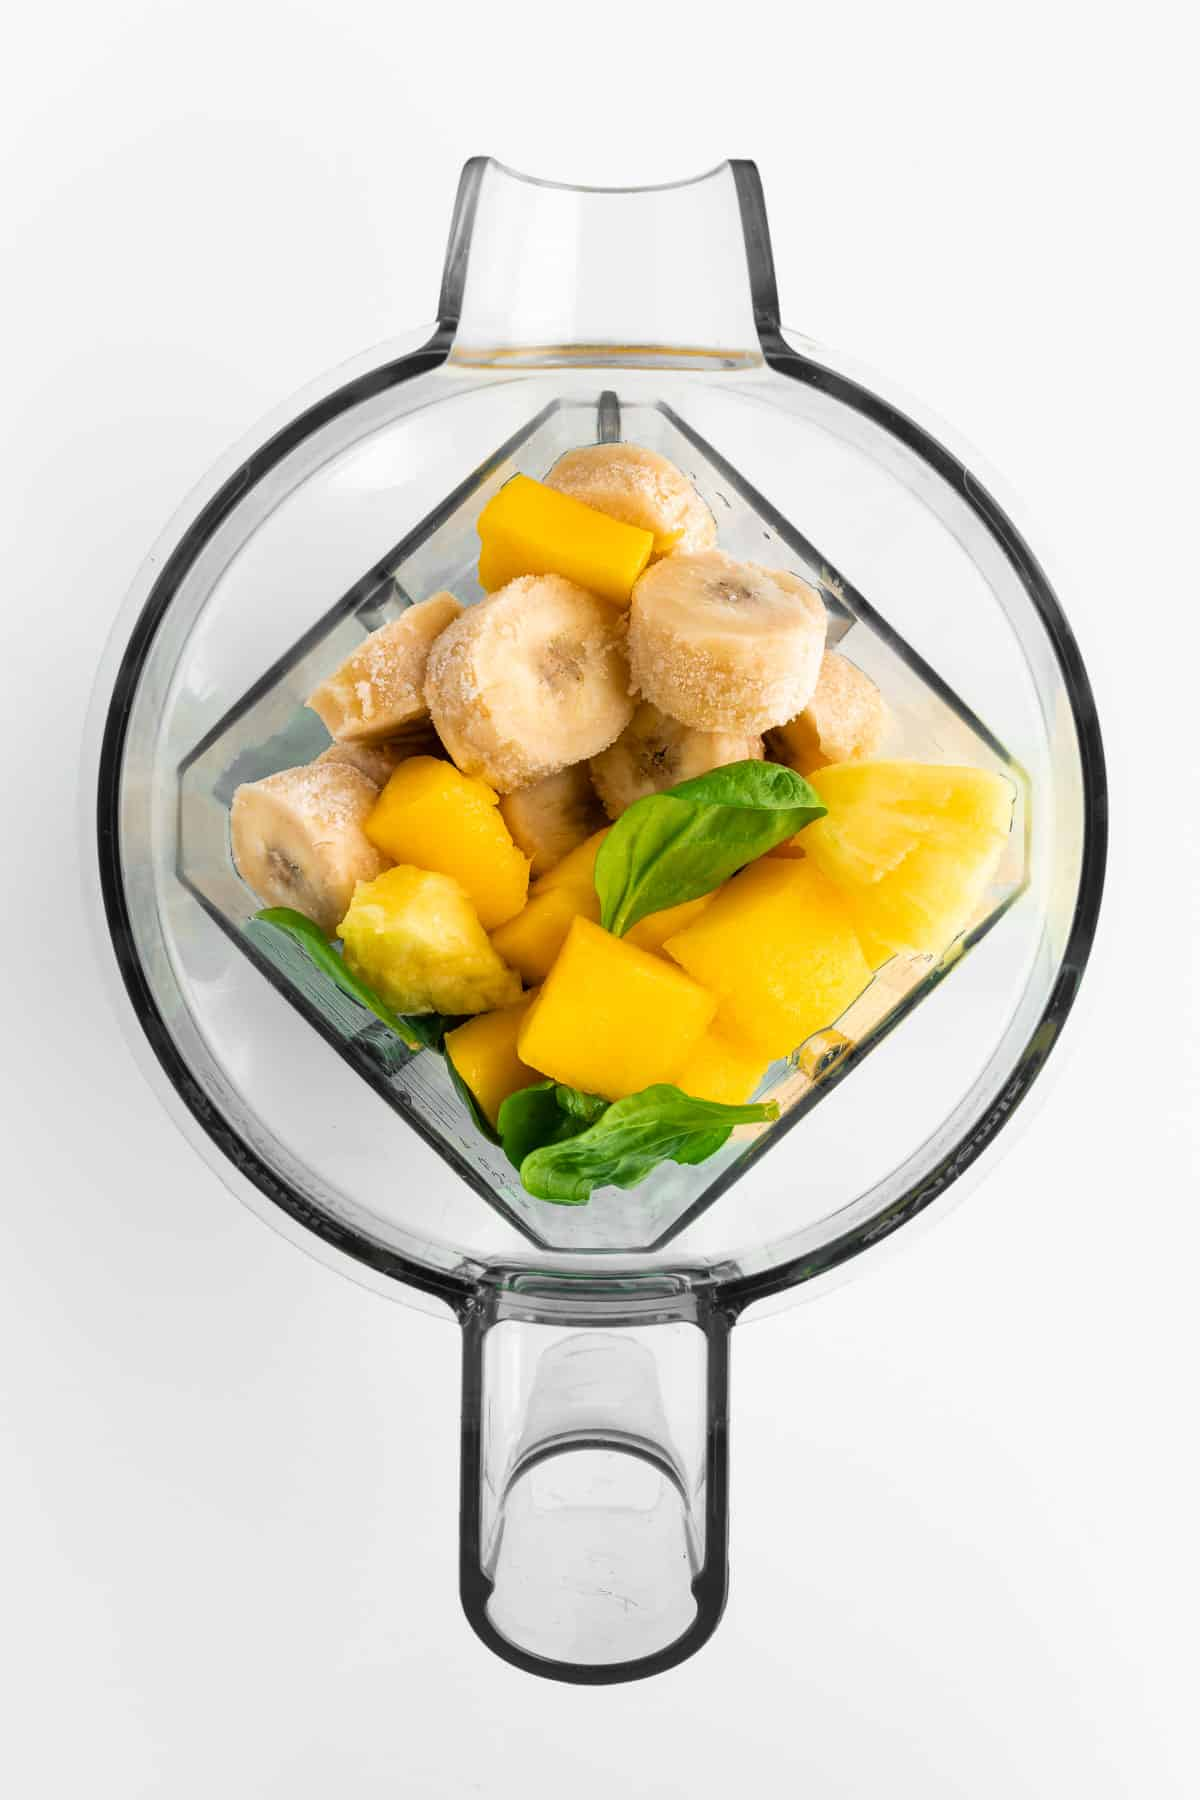 spinach, banana, mango, and pineapple inside a blender